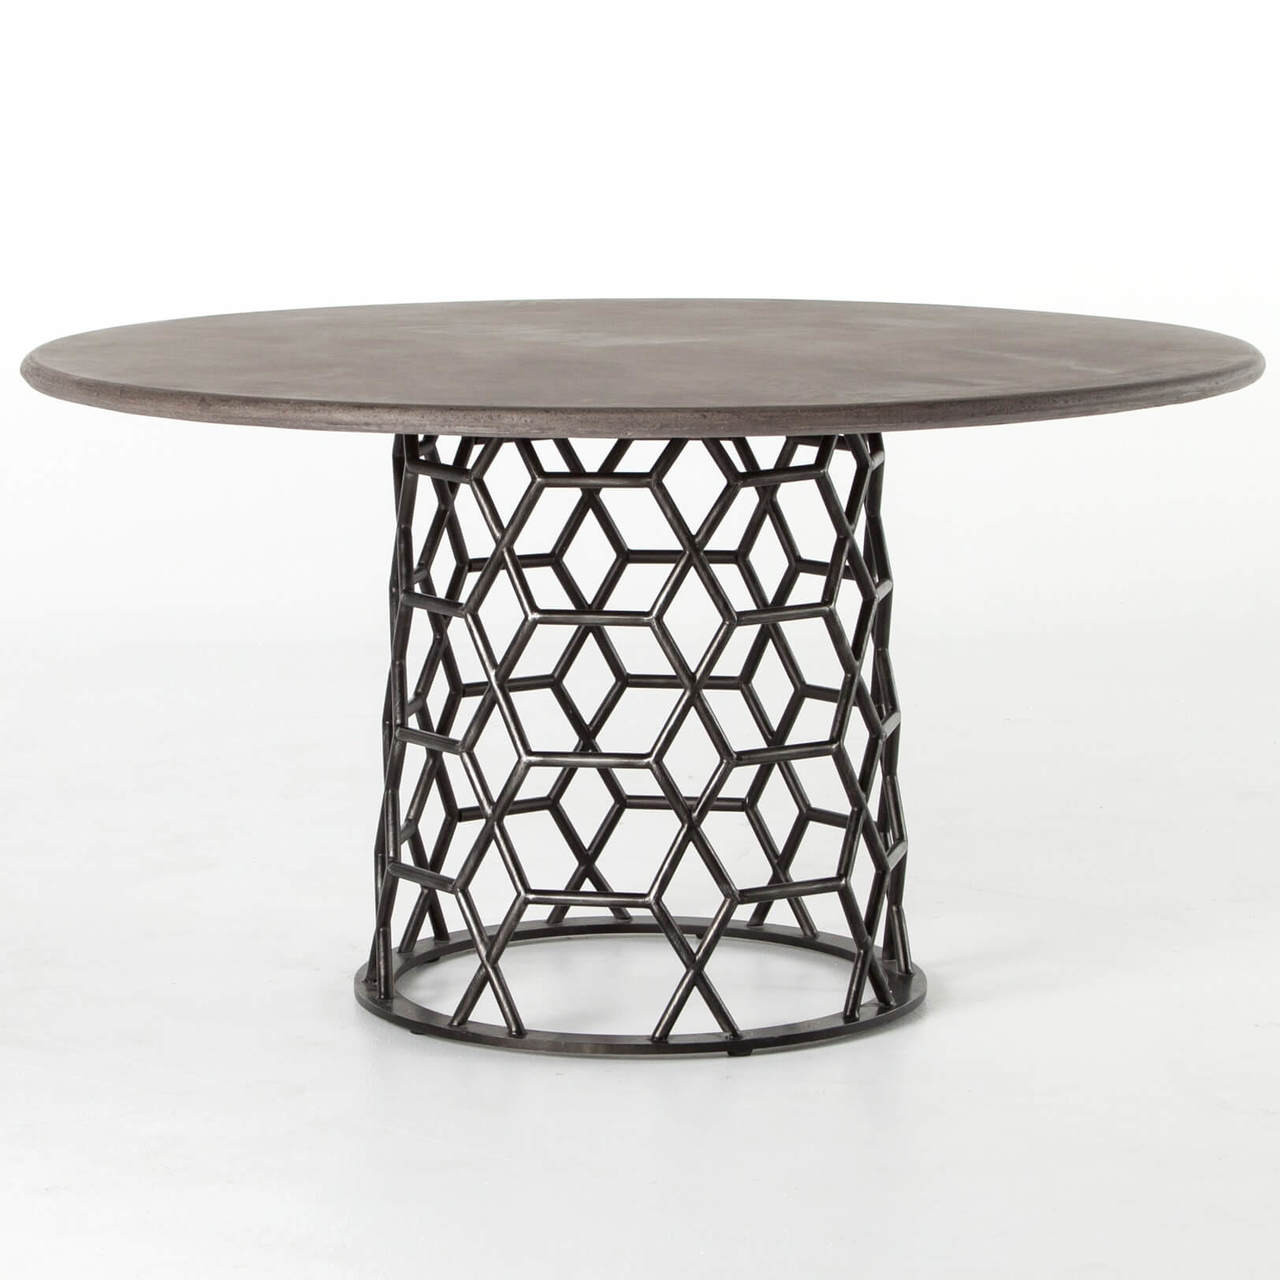 Arden Concrete Top Metal Pedestal Round Dining Table 54